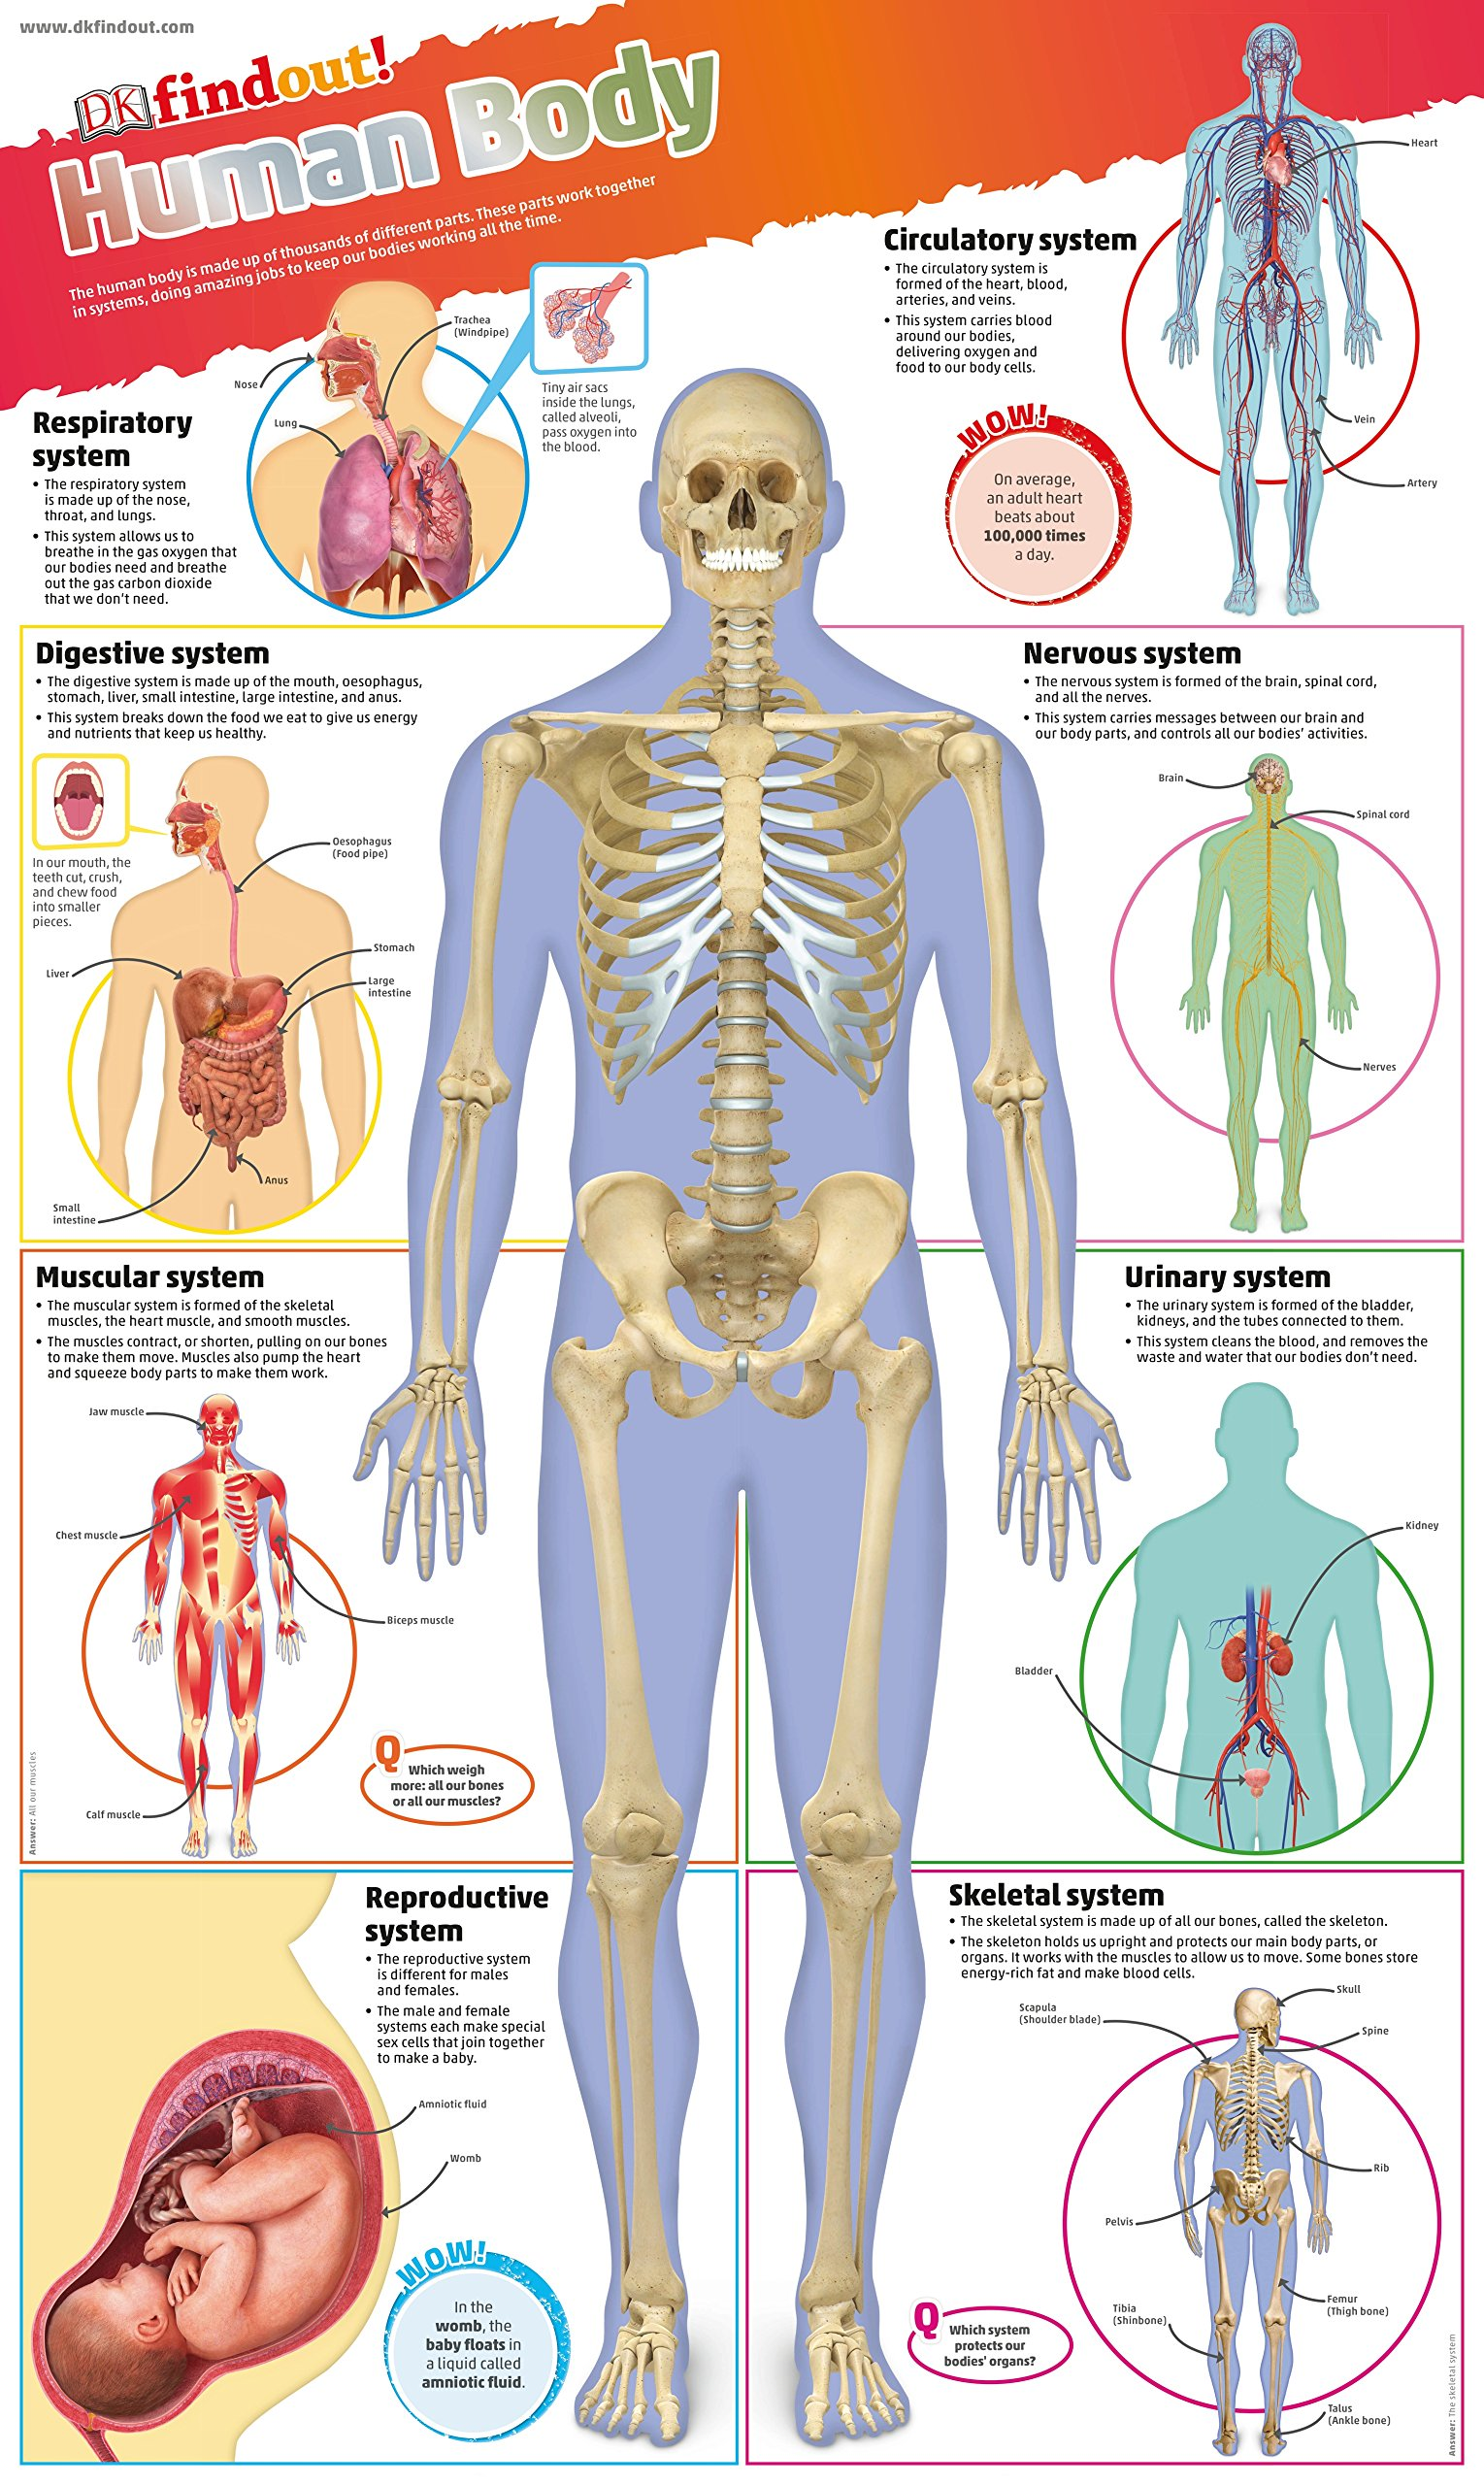 Dkfindout Human Body Poster Dk Amazon Books